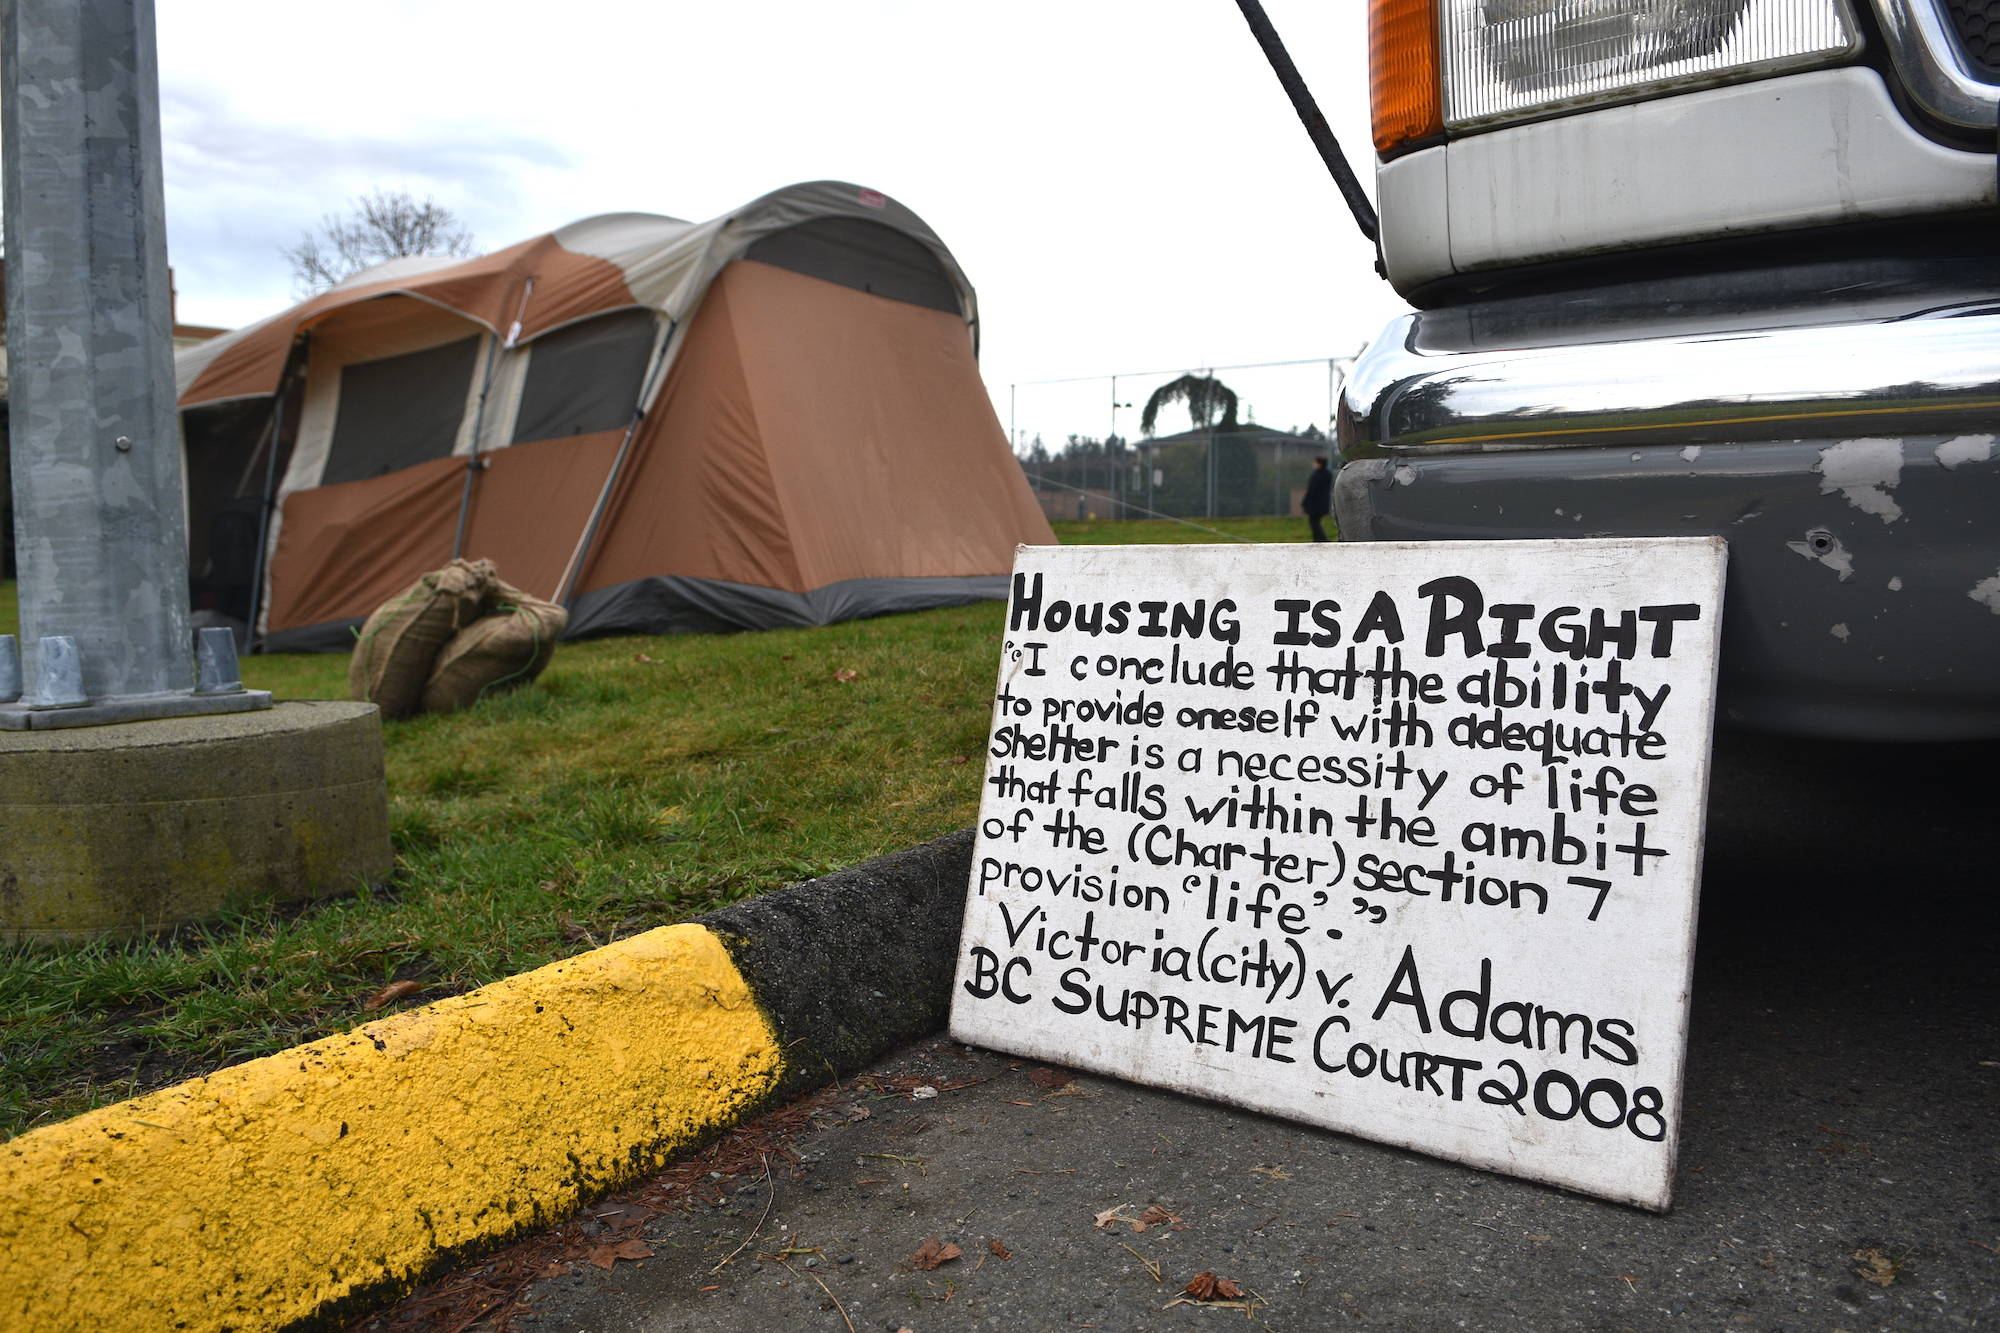 Tent city arrives in Central Saanich & Tent city arrives in Central Saanich - Victoria News